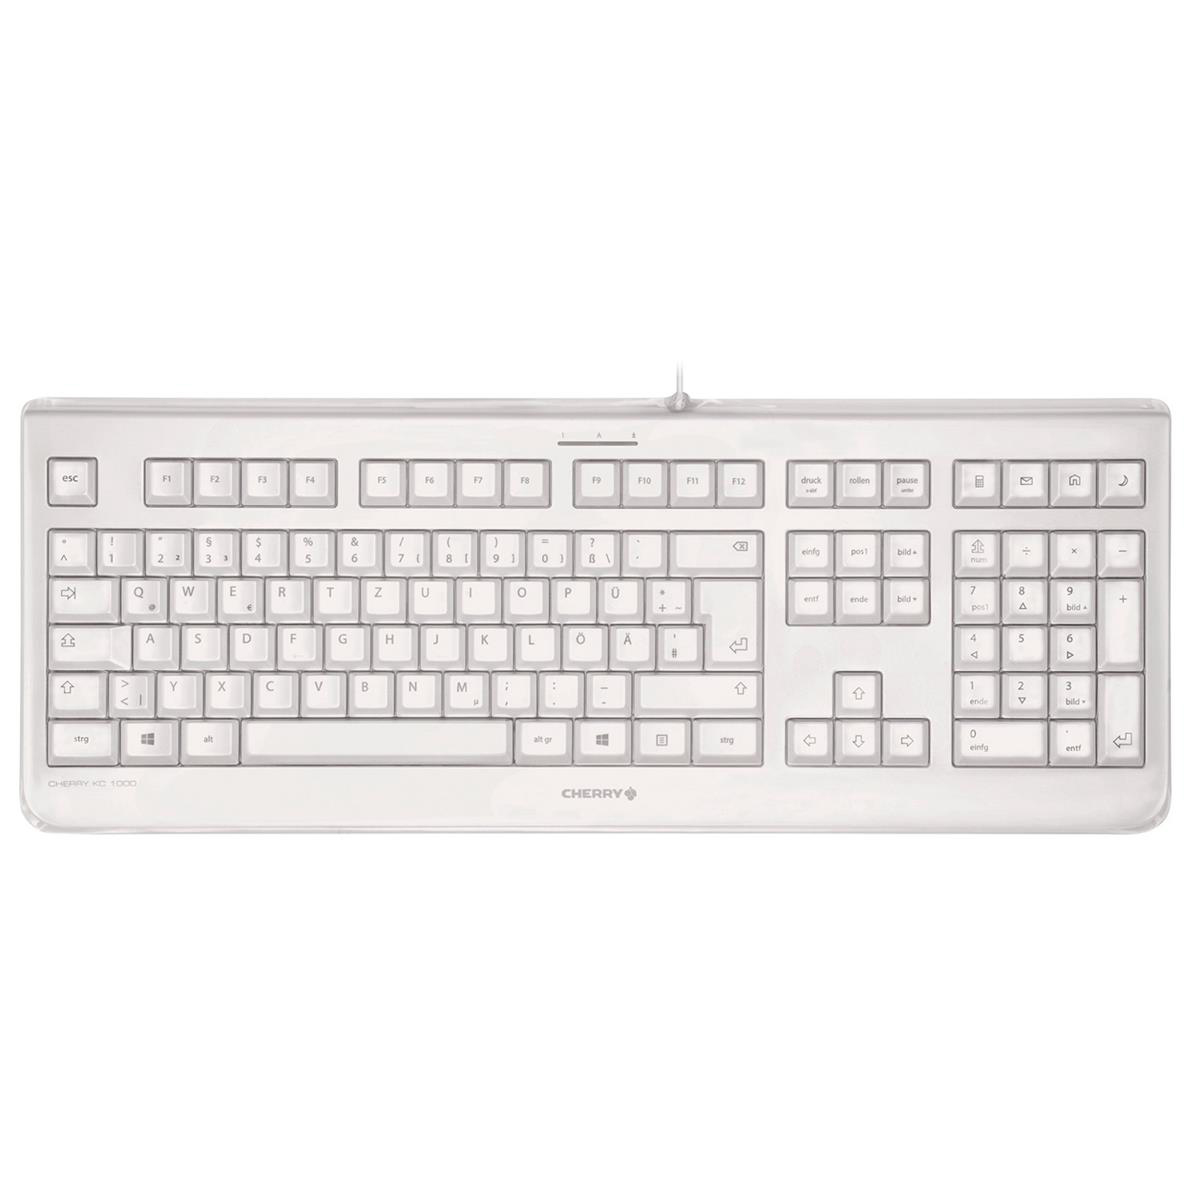 Cherry KC 1068 Heat-sealed Keyboard Ultra Flat USB Connection Grey Ref KC 1068